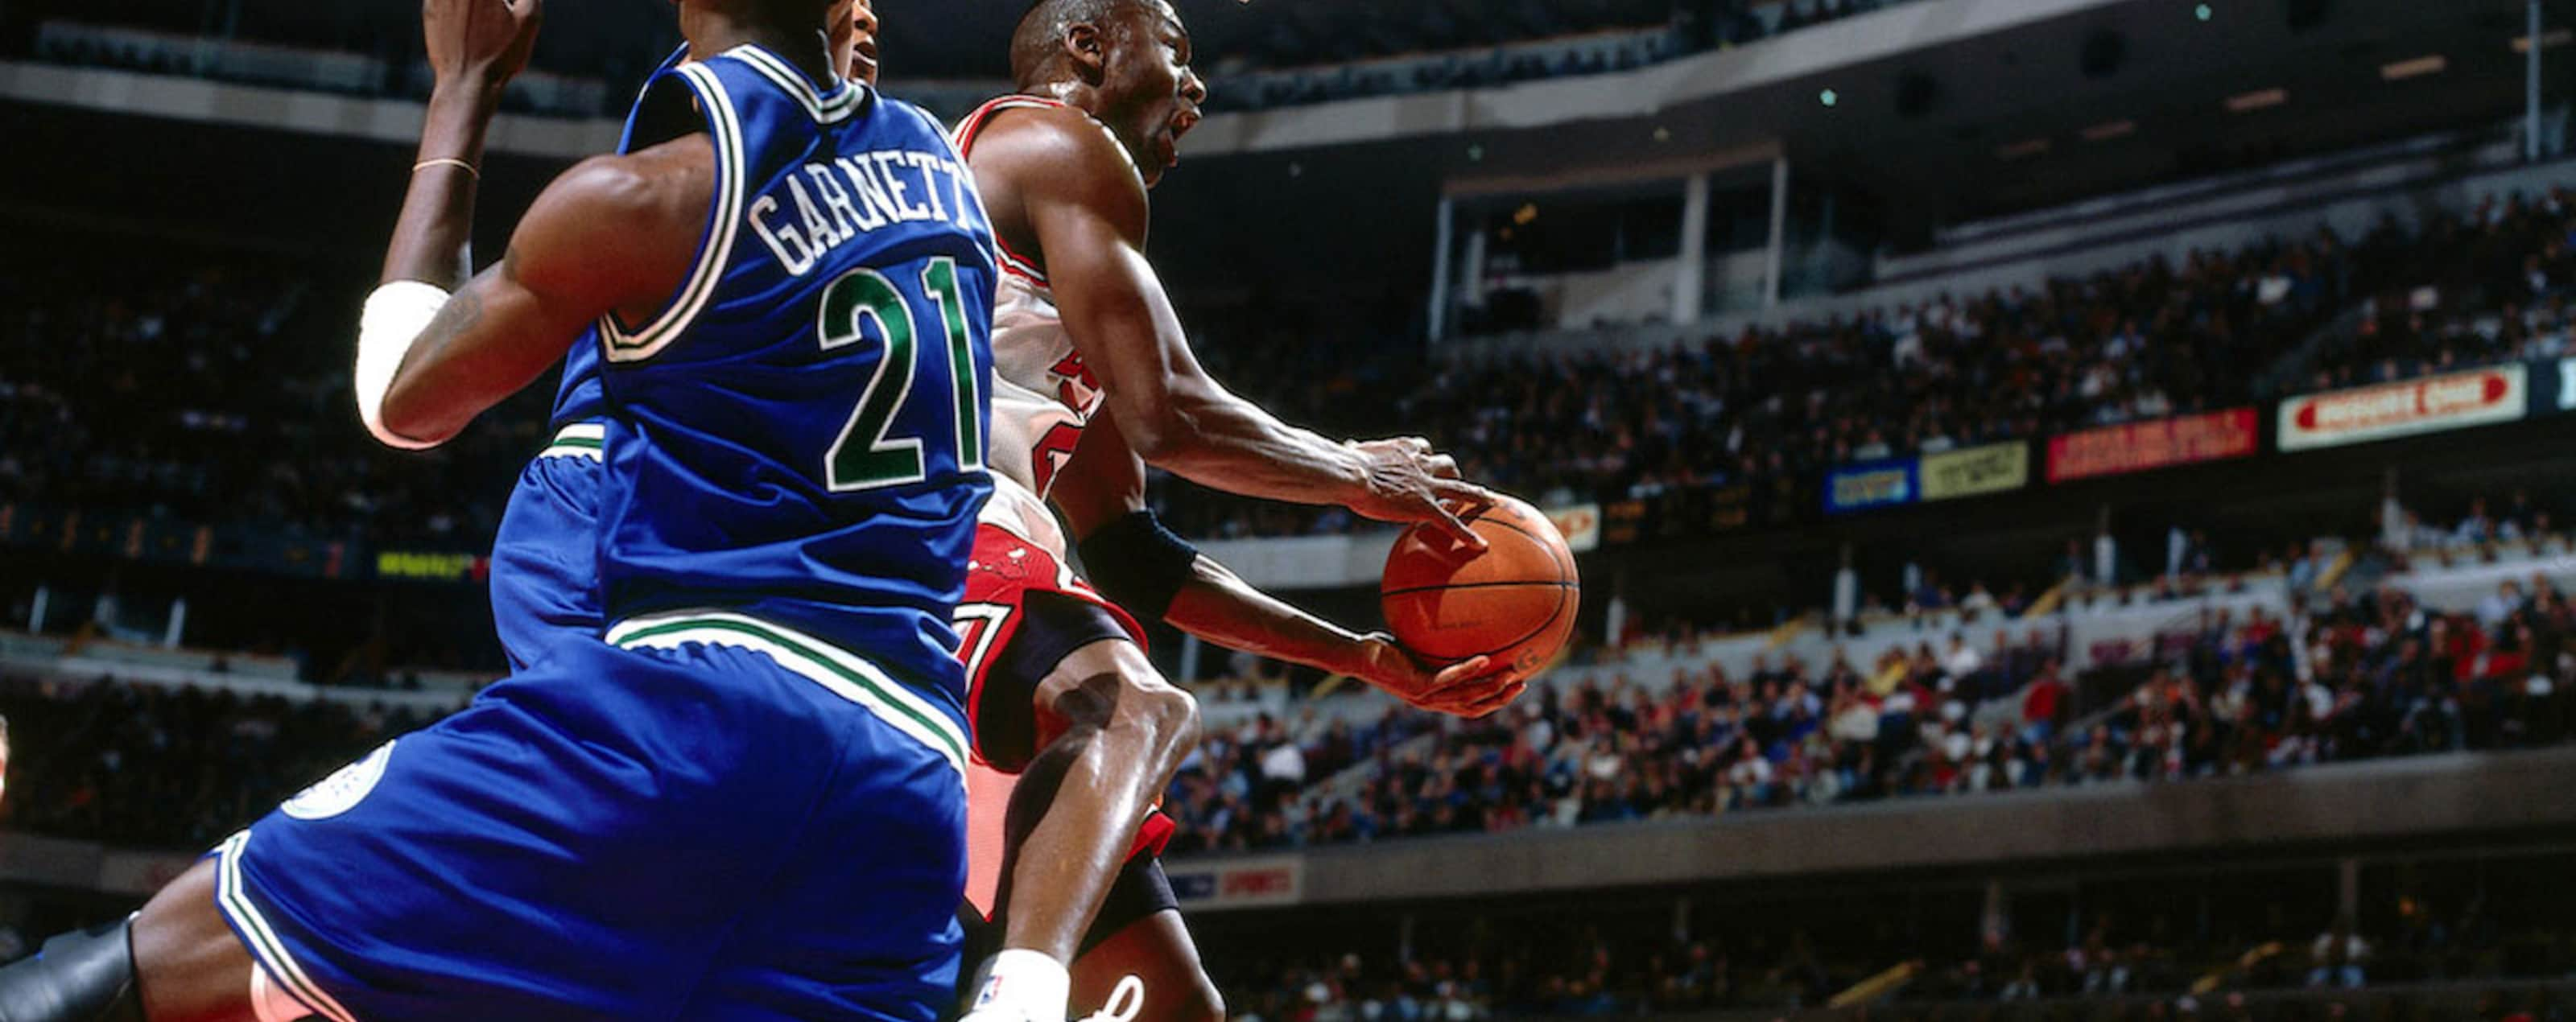 Michael Jordan goes to the hoop defended by Kevin Garnett